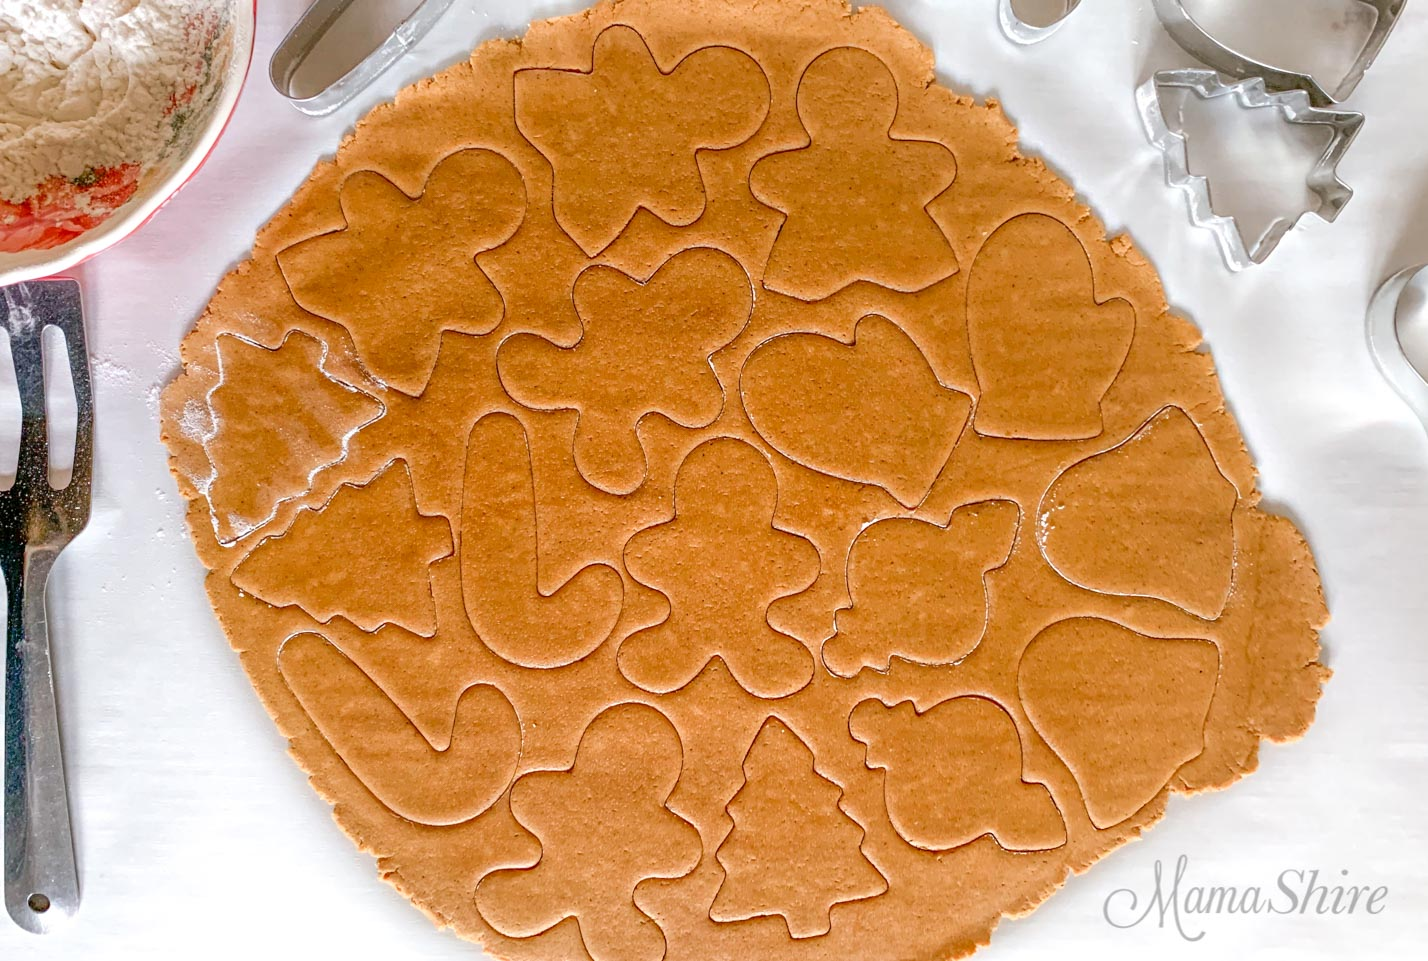 Gingerbread dough with Christmas cutouts.